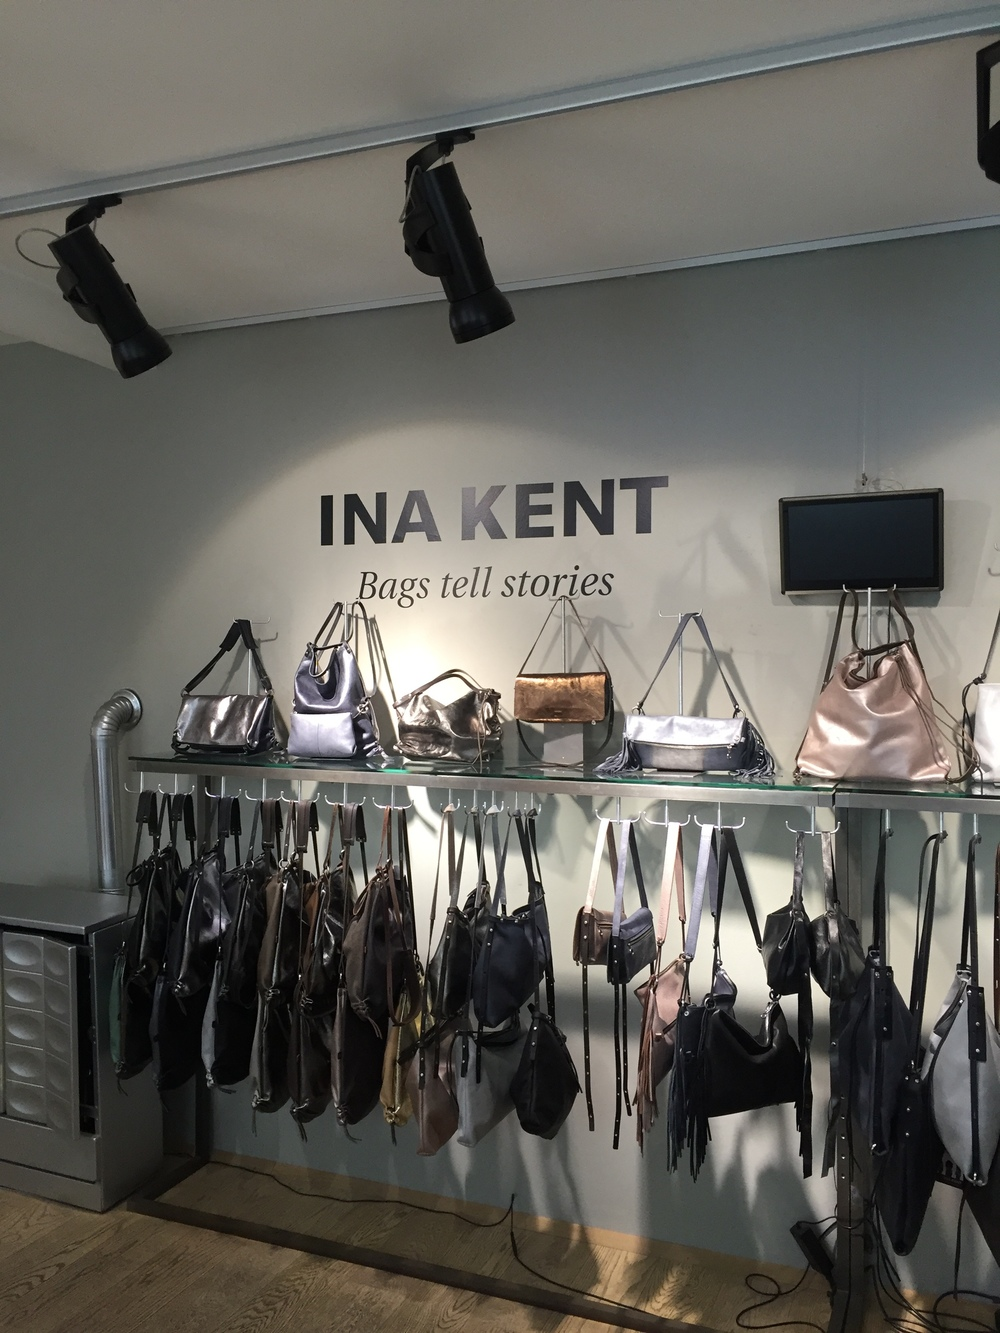 great bags - made and designed in Vienna! Visit INA KENT at Siebensterngasse 50, 1070 Vienna